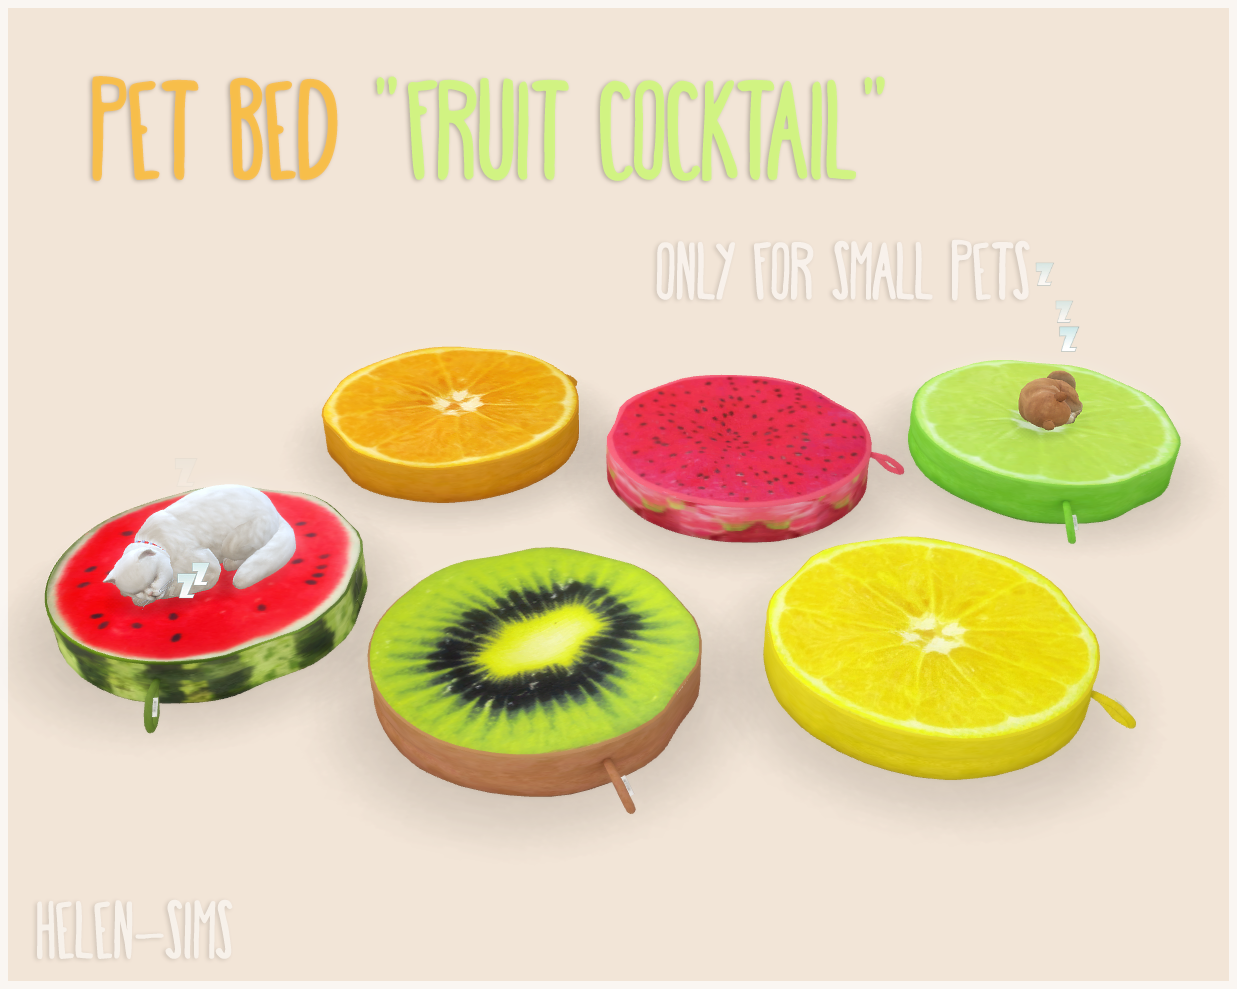 Ts4 Pet Bed Fruit Cocktail Sims 4 Sims 4 Pets Sims